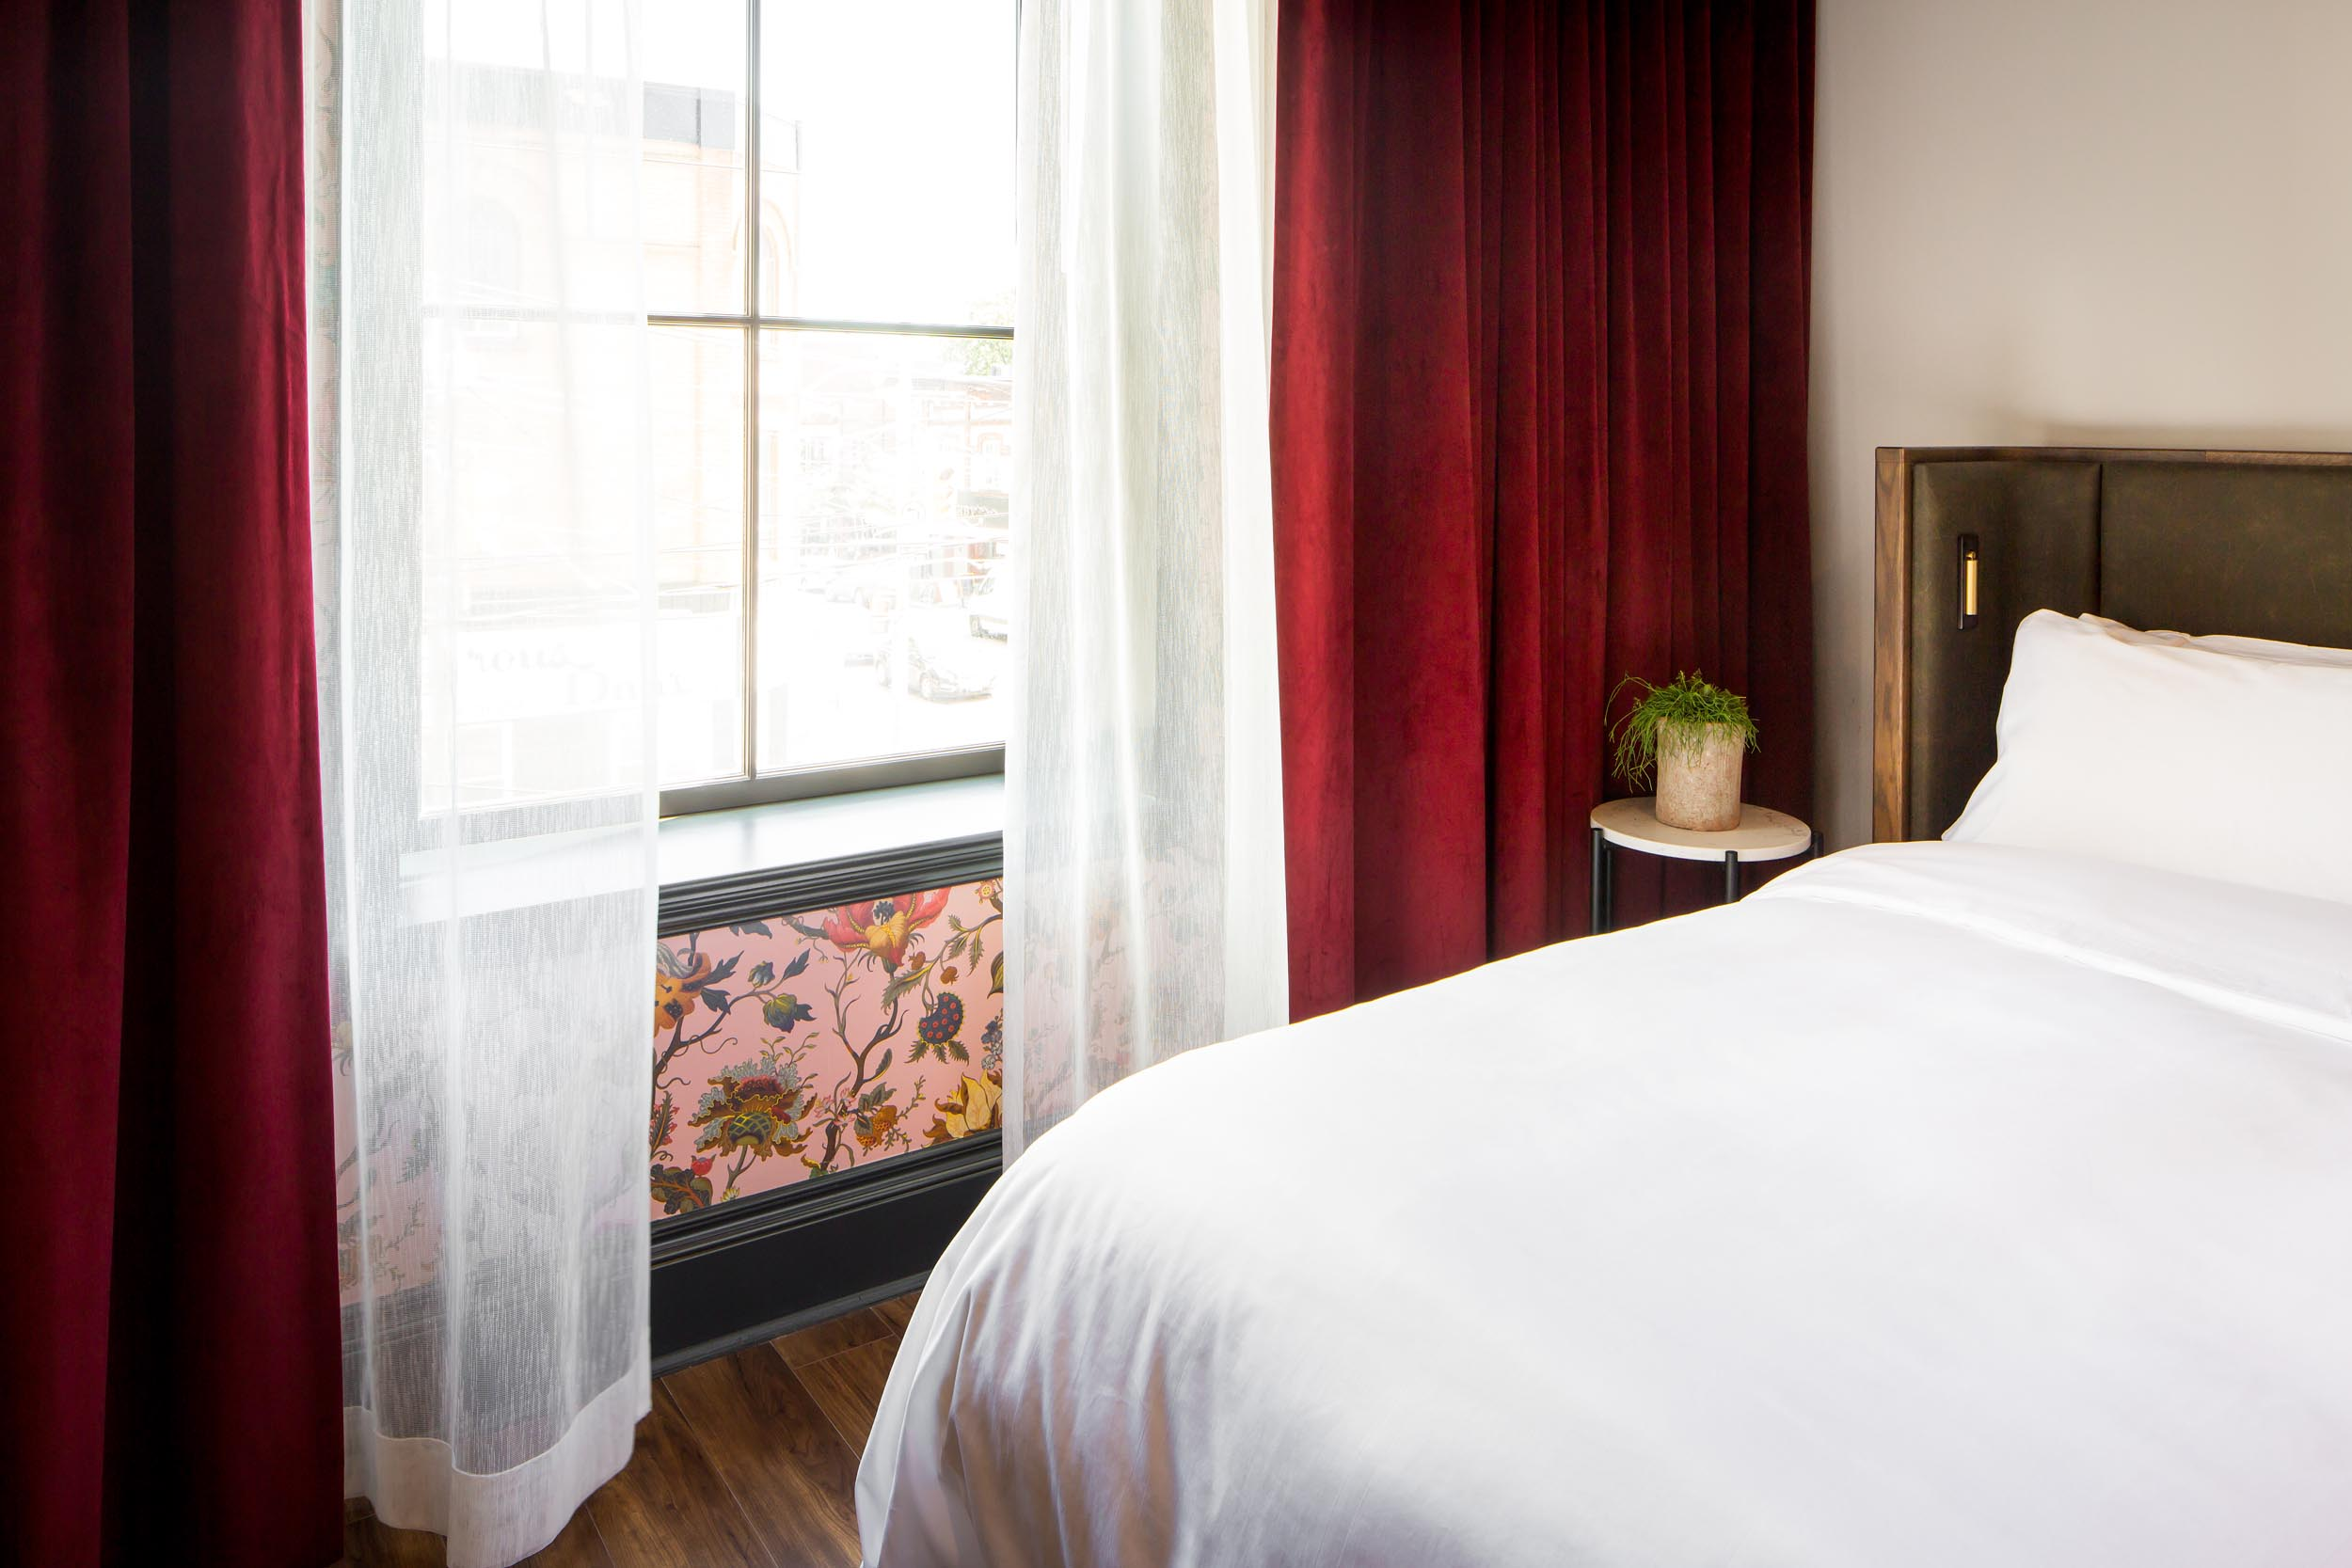 Broadview Hotel Small Room Interior Photography by Worker Bee Supply